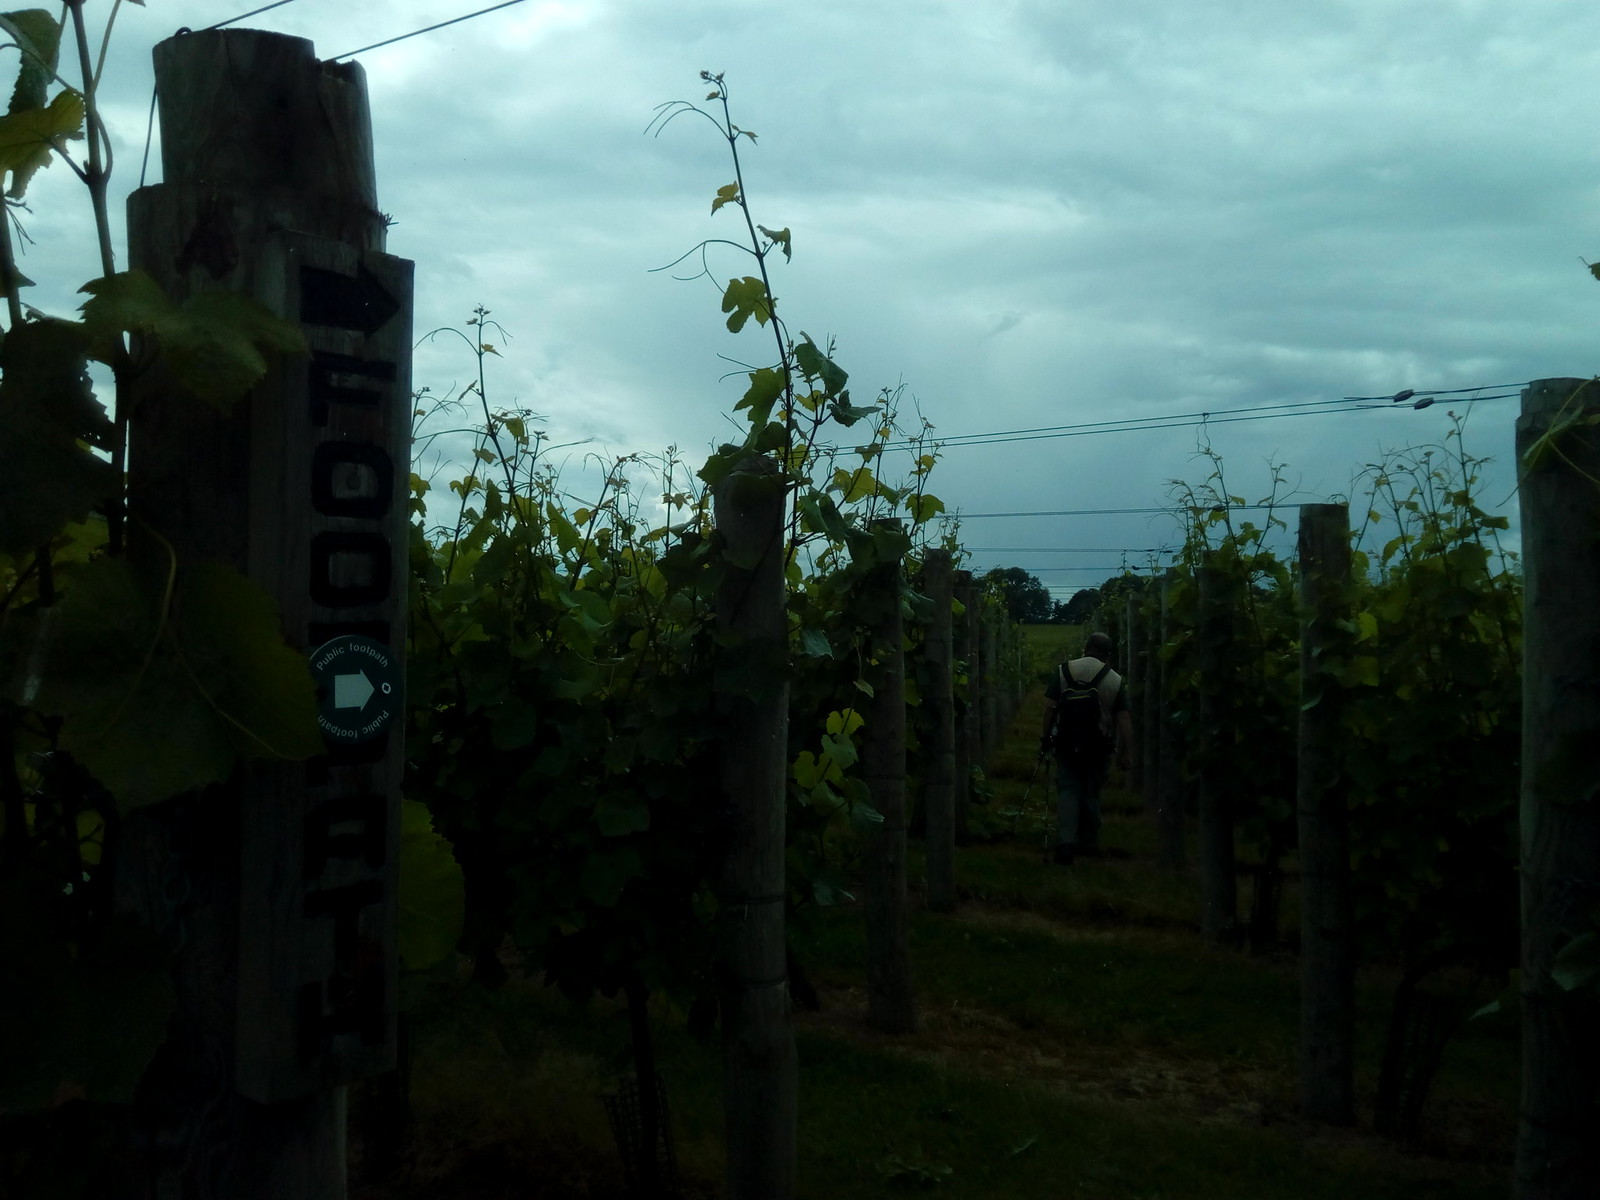 Tiptoe through the tulips ... err I meant vines Redfold Vineyards have kindly signposted the right of way through their vineyard and created a clearly discernable footpath for walkers to follow. Much appreciated by the Saturday Walking Club